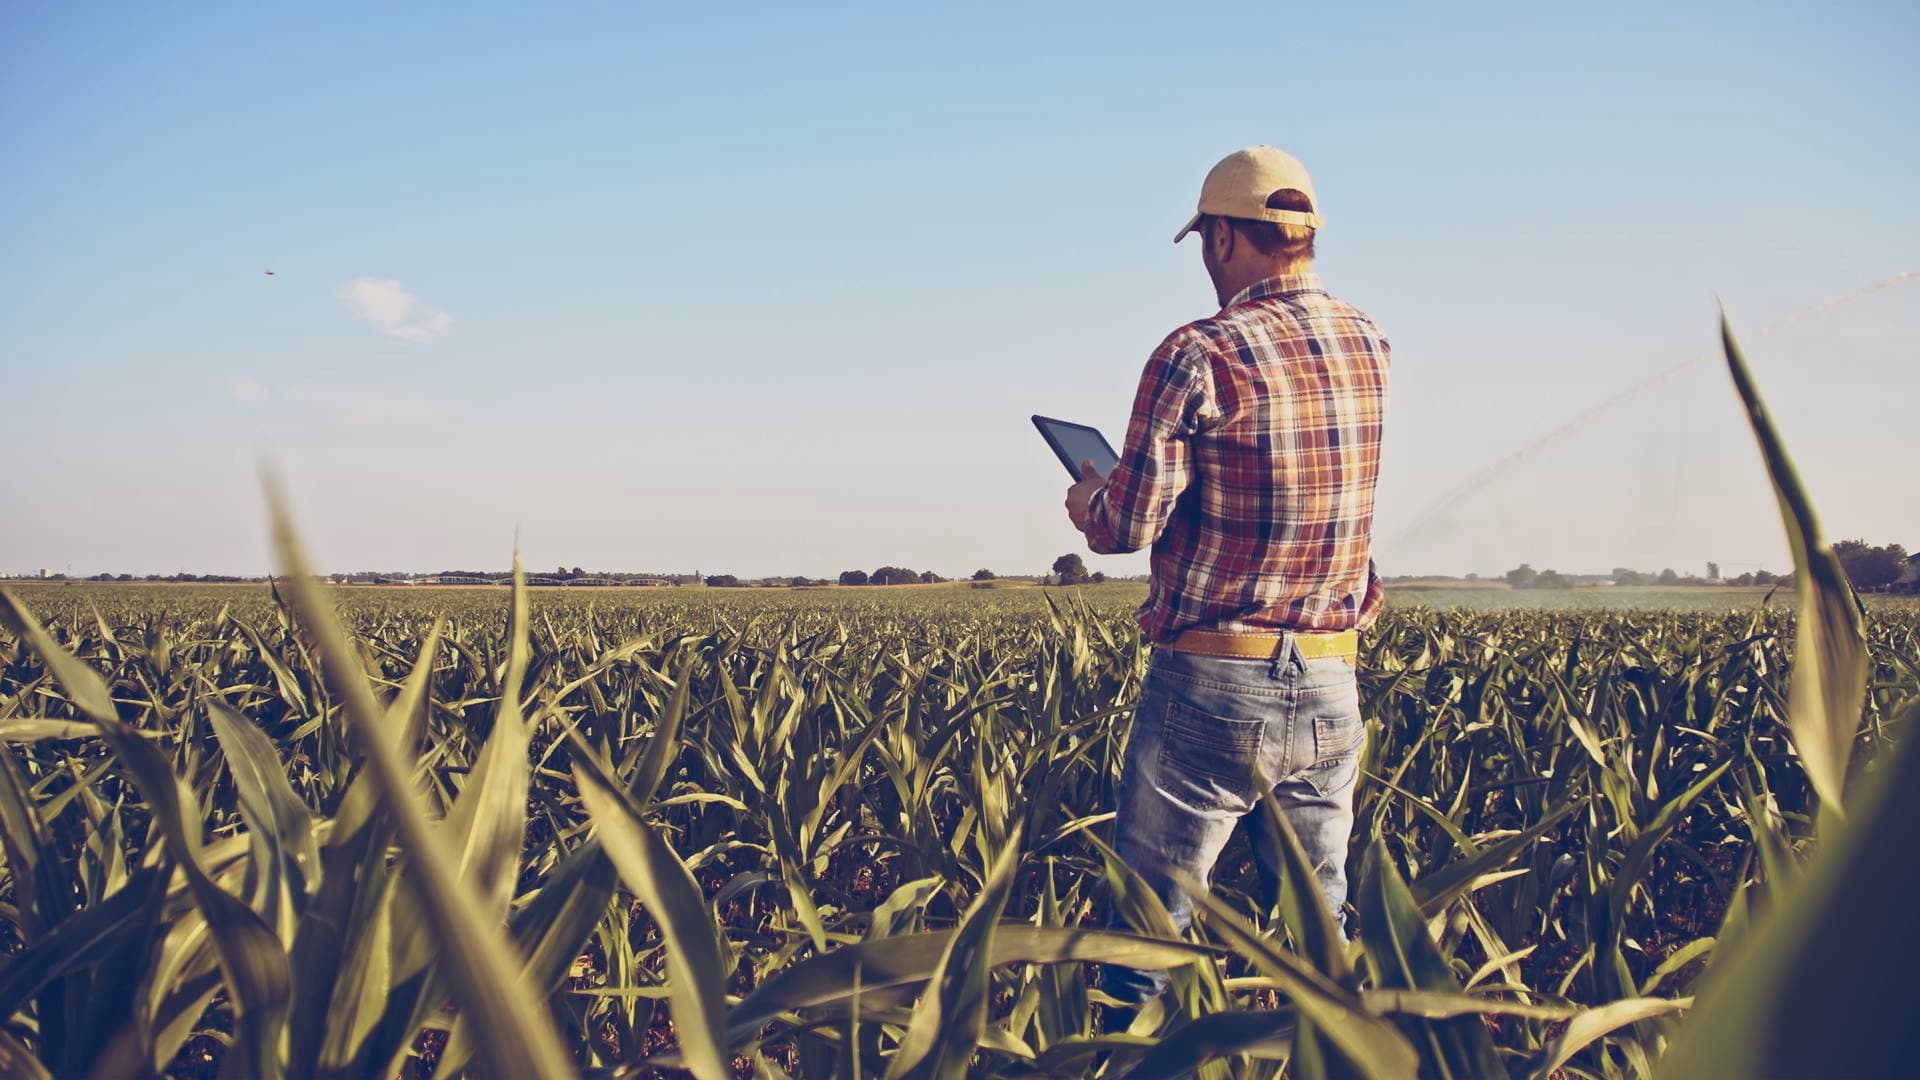 Farmer standing in a field of crops looking at a tablet.